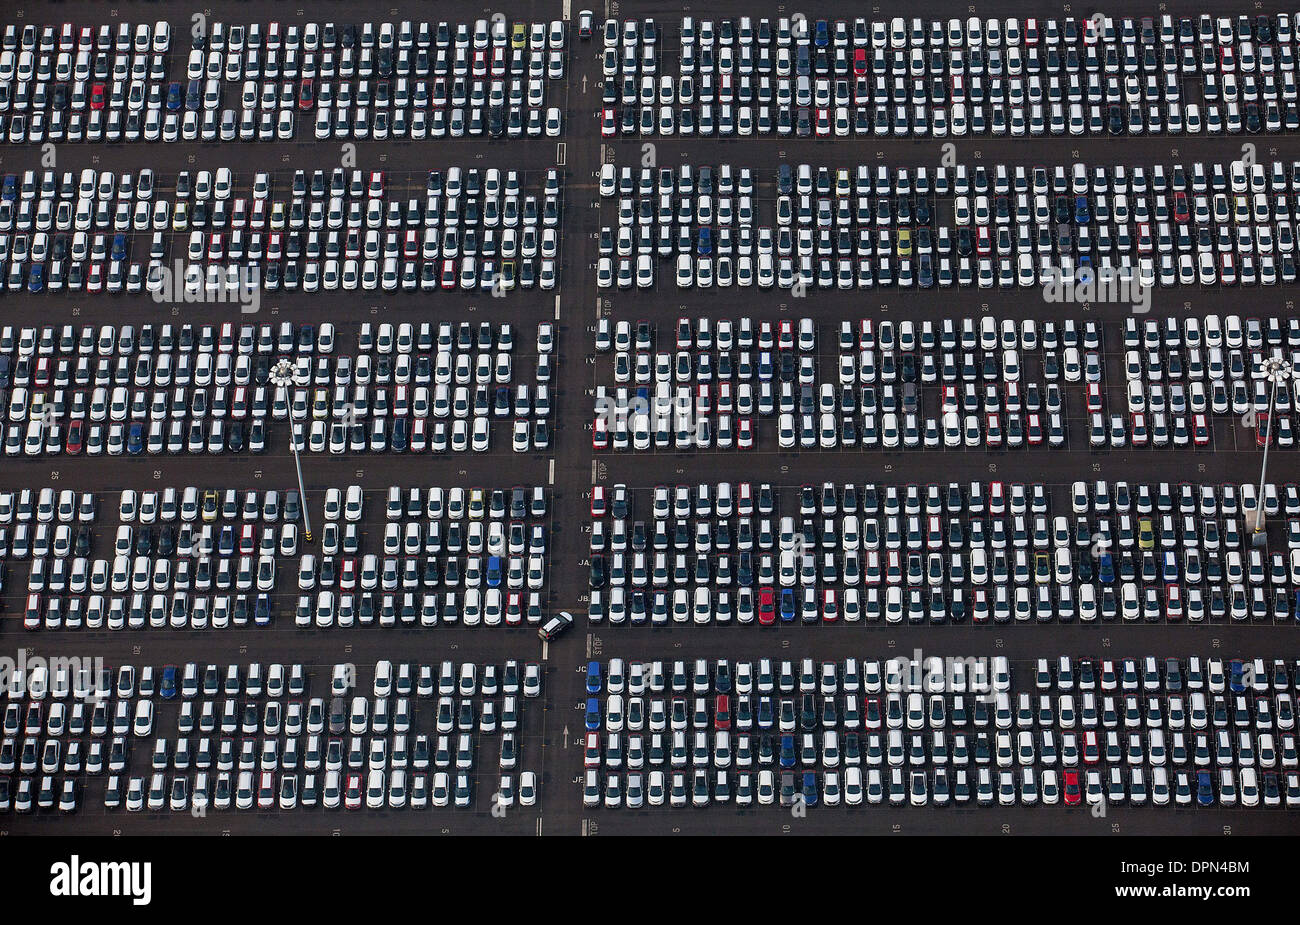 Cars in Avonmouth as viewed from the air. 9th January 2014. - Stock Image